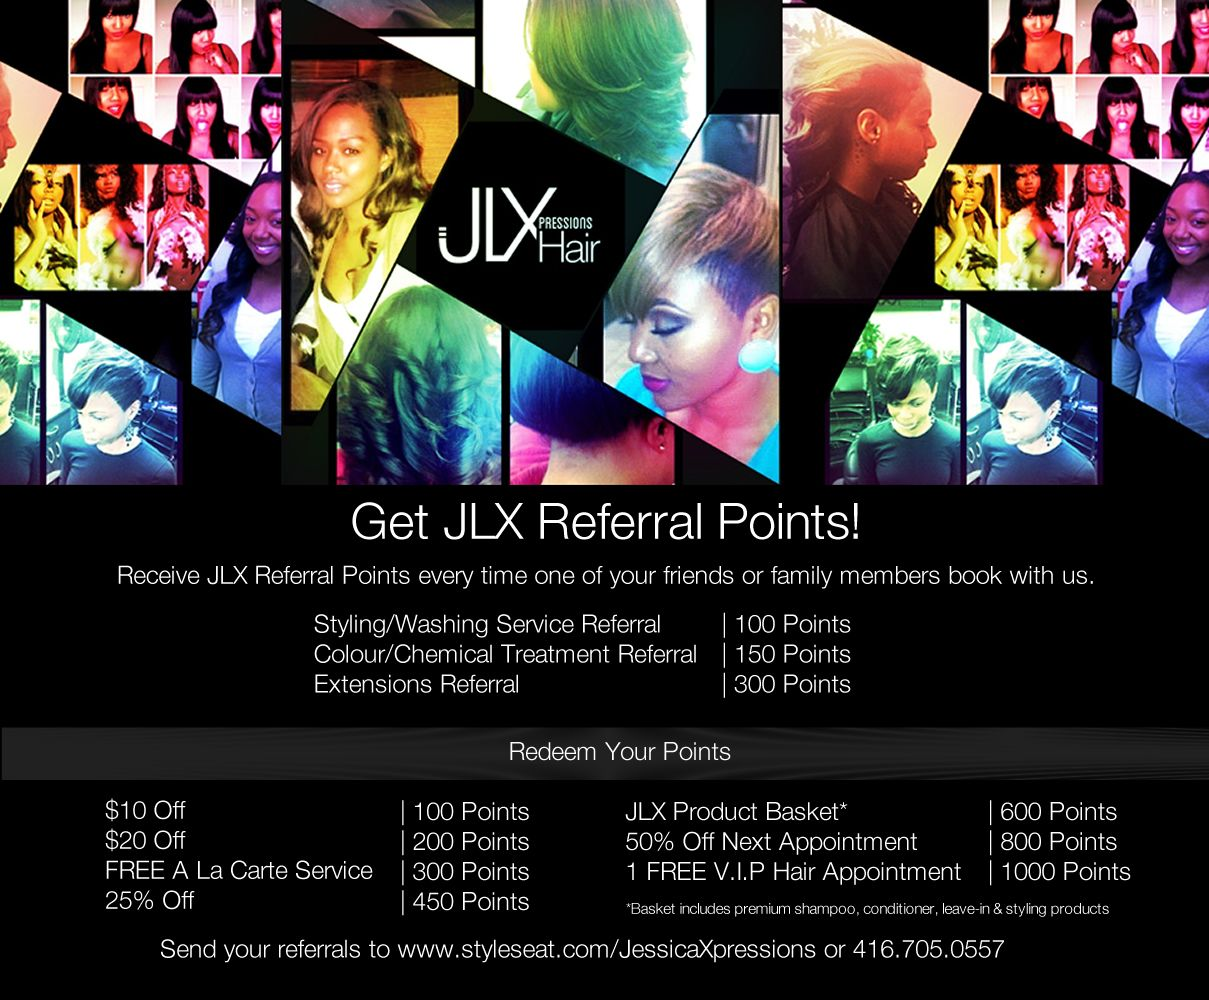 Get your JLX Referral Points!